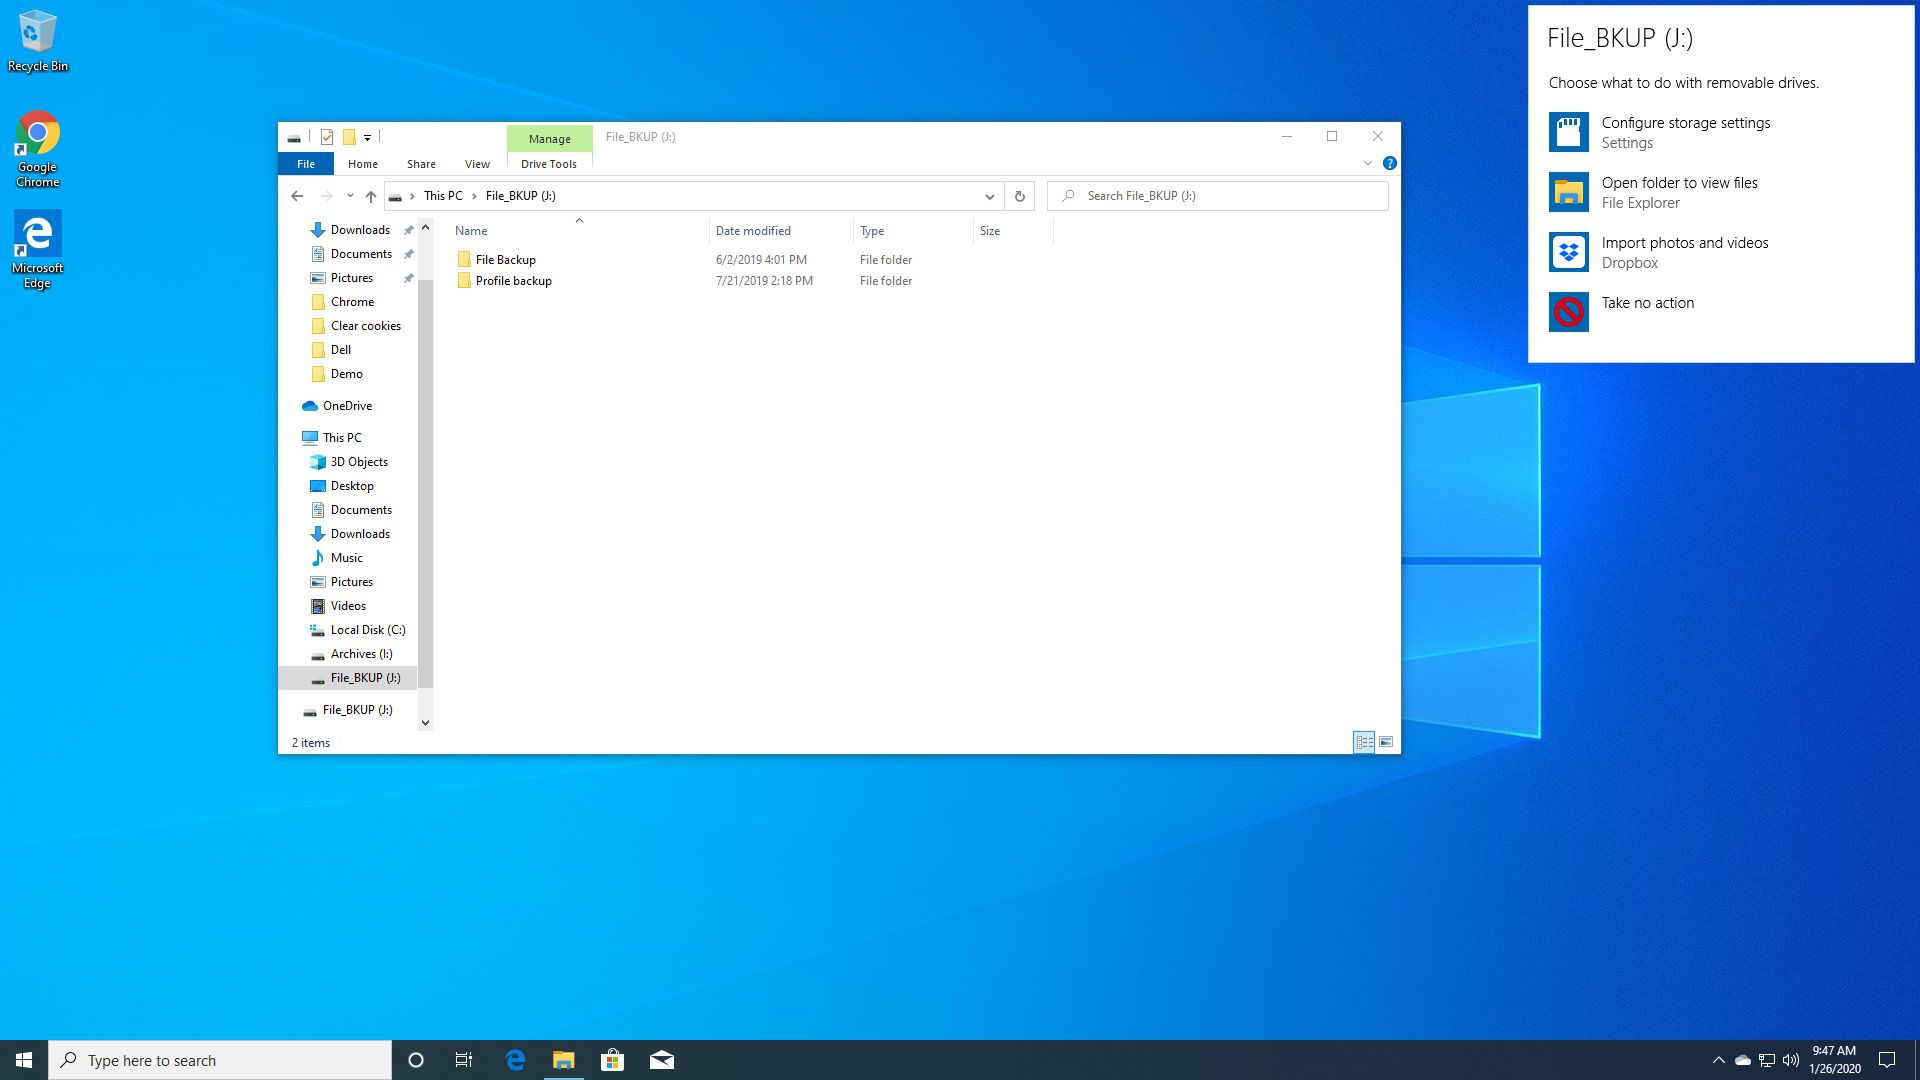 Windows 10 dialog on how to handle a new hard drive.